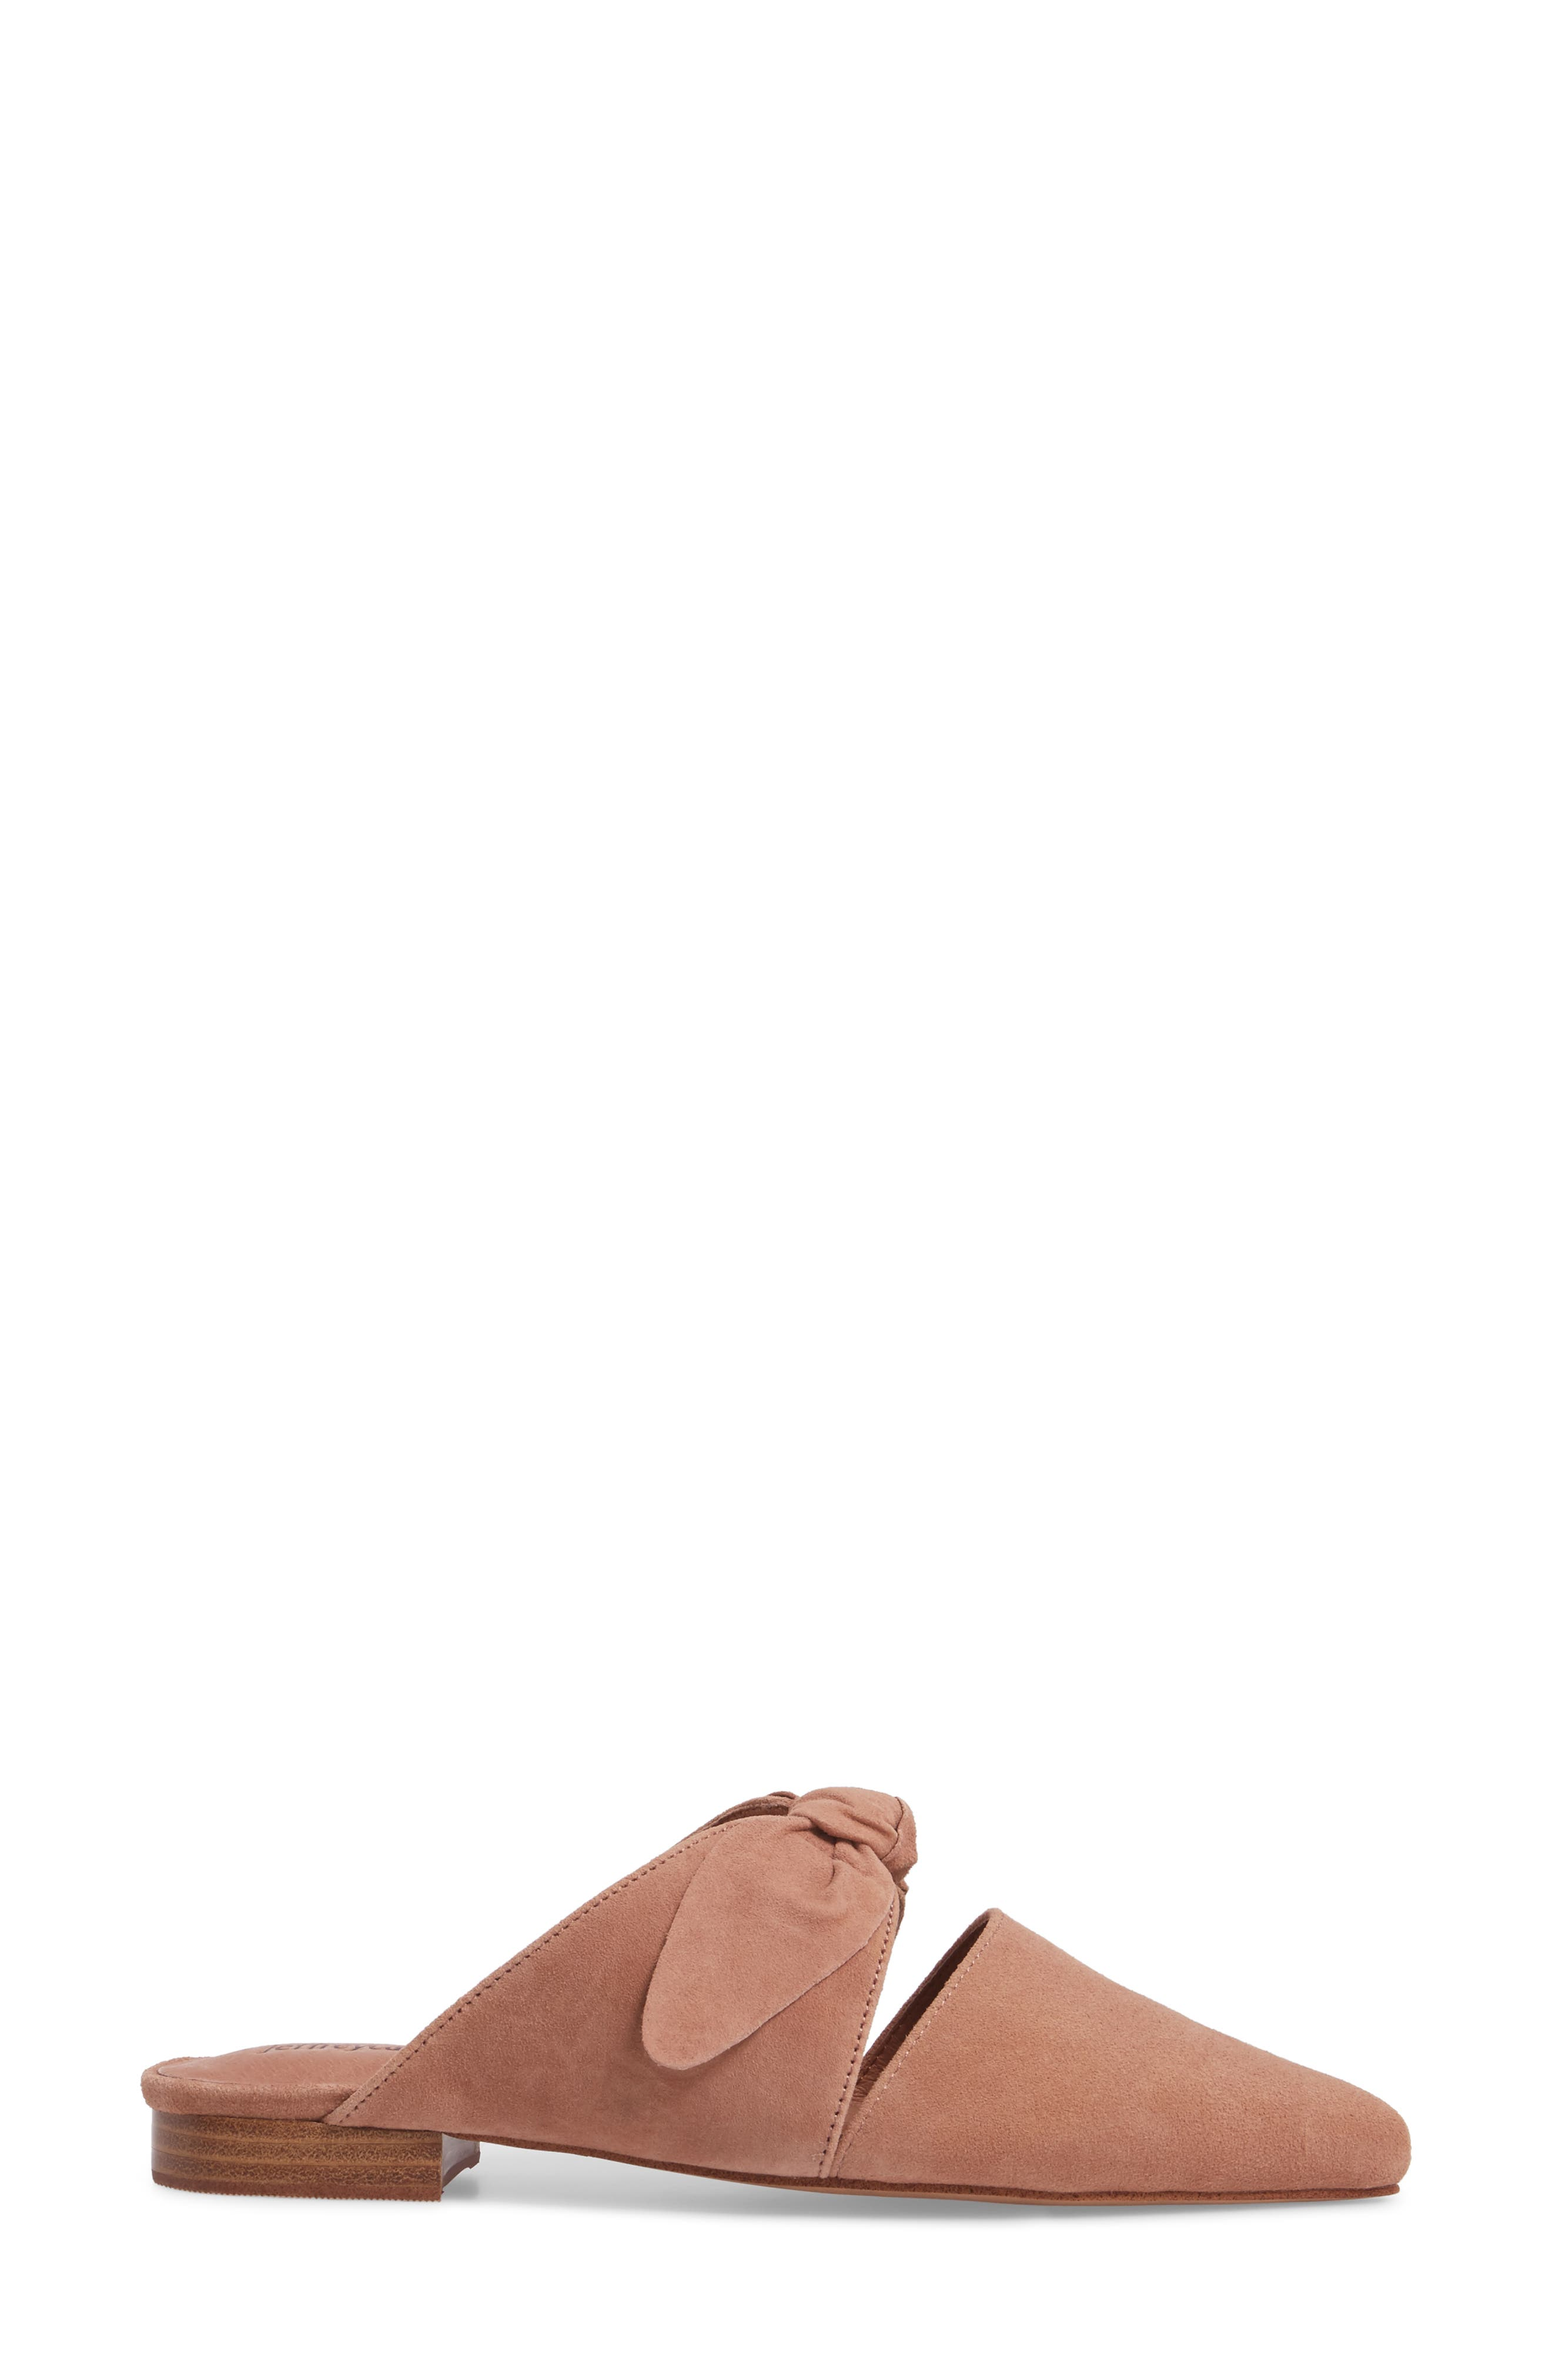 Charlin Bow Mule,                             Alternate thumbnail 3, color,                             Blush Suede